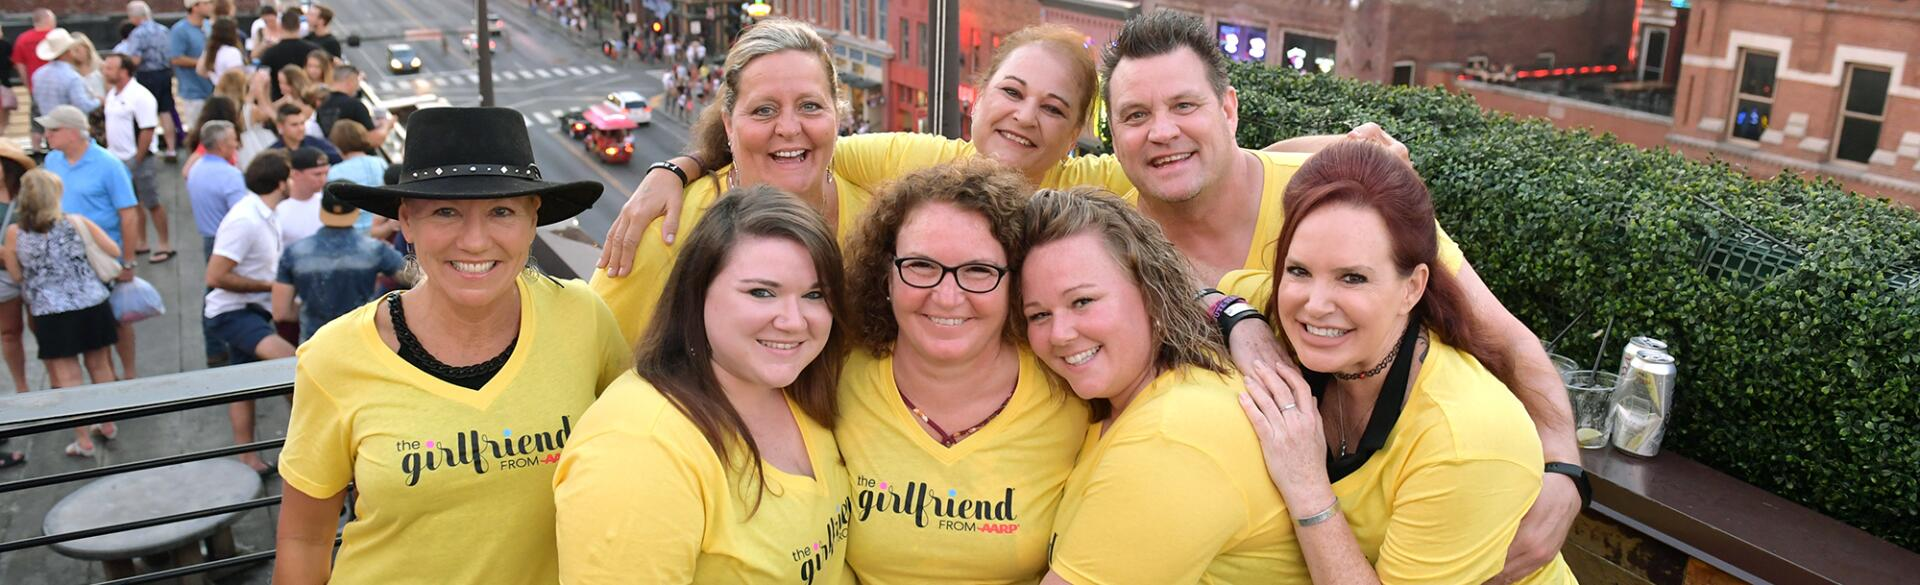 Friends from the vegas shooting have a girls night out wearing The Girlfriend tshirts